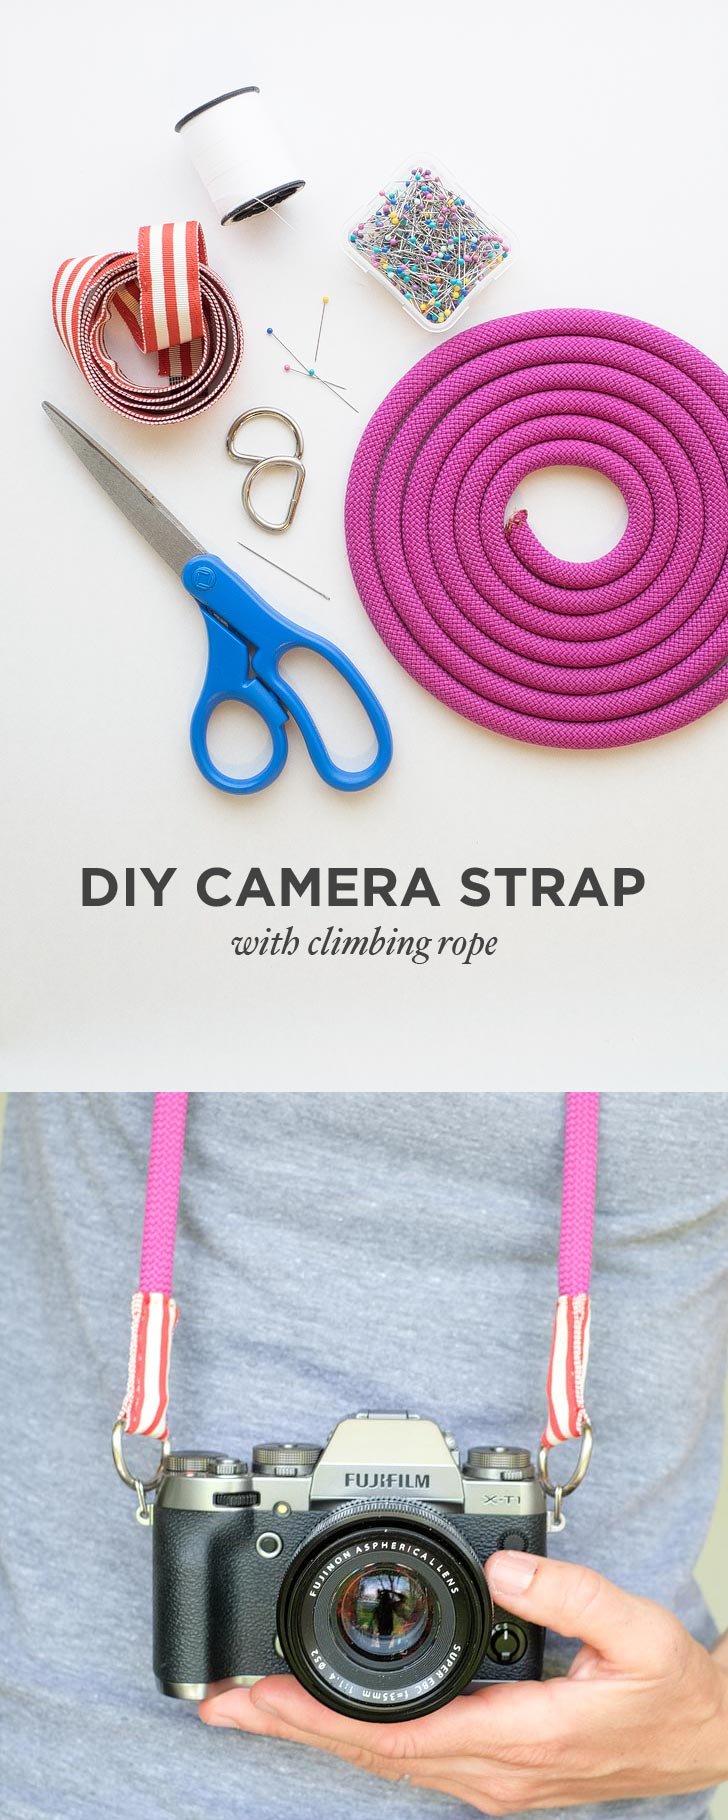 DIY Camera Strap with Climbing Rope Tutorial » Local ...